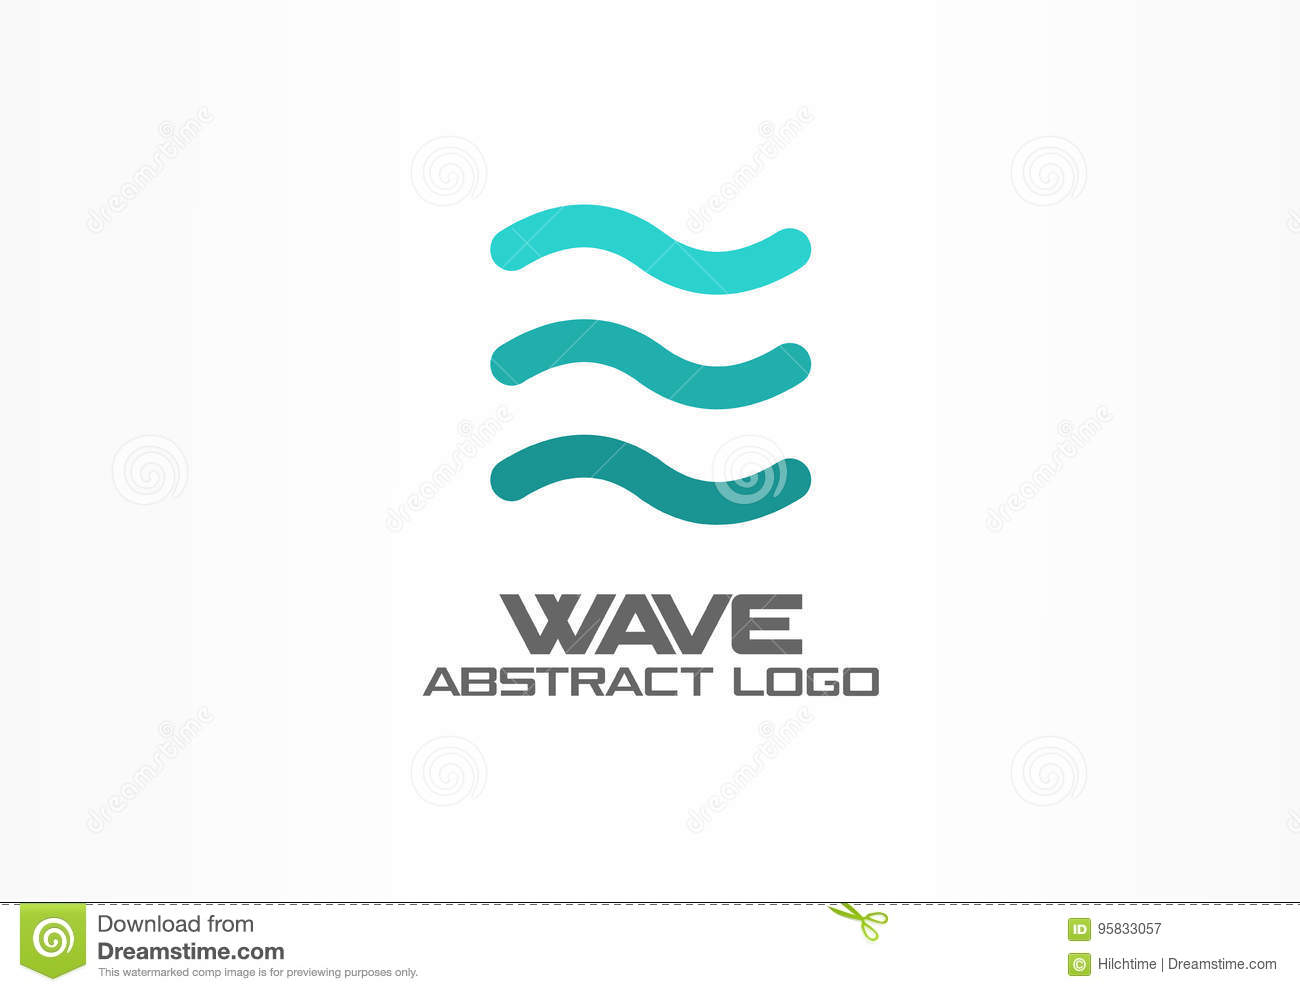 Aqua Whirlpools Abstract Logo For Business Company Eco Ocean Nature Whirlpool